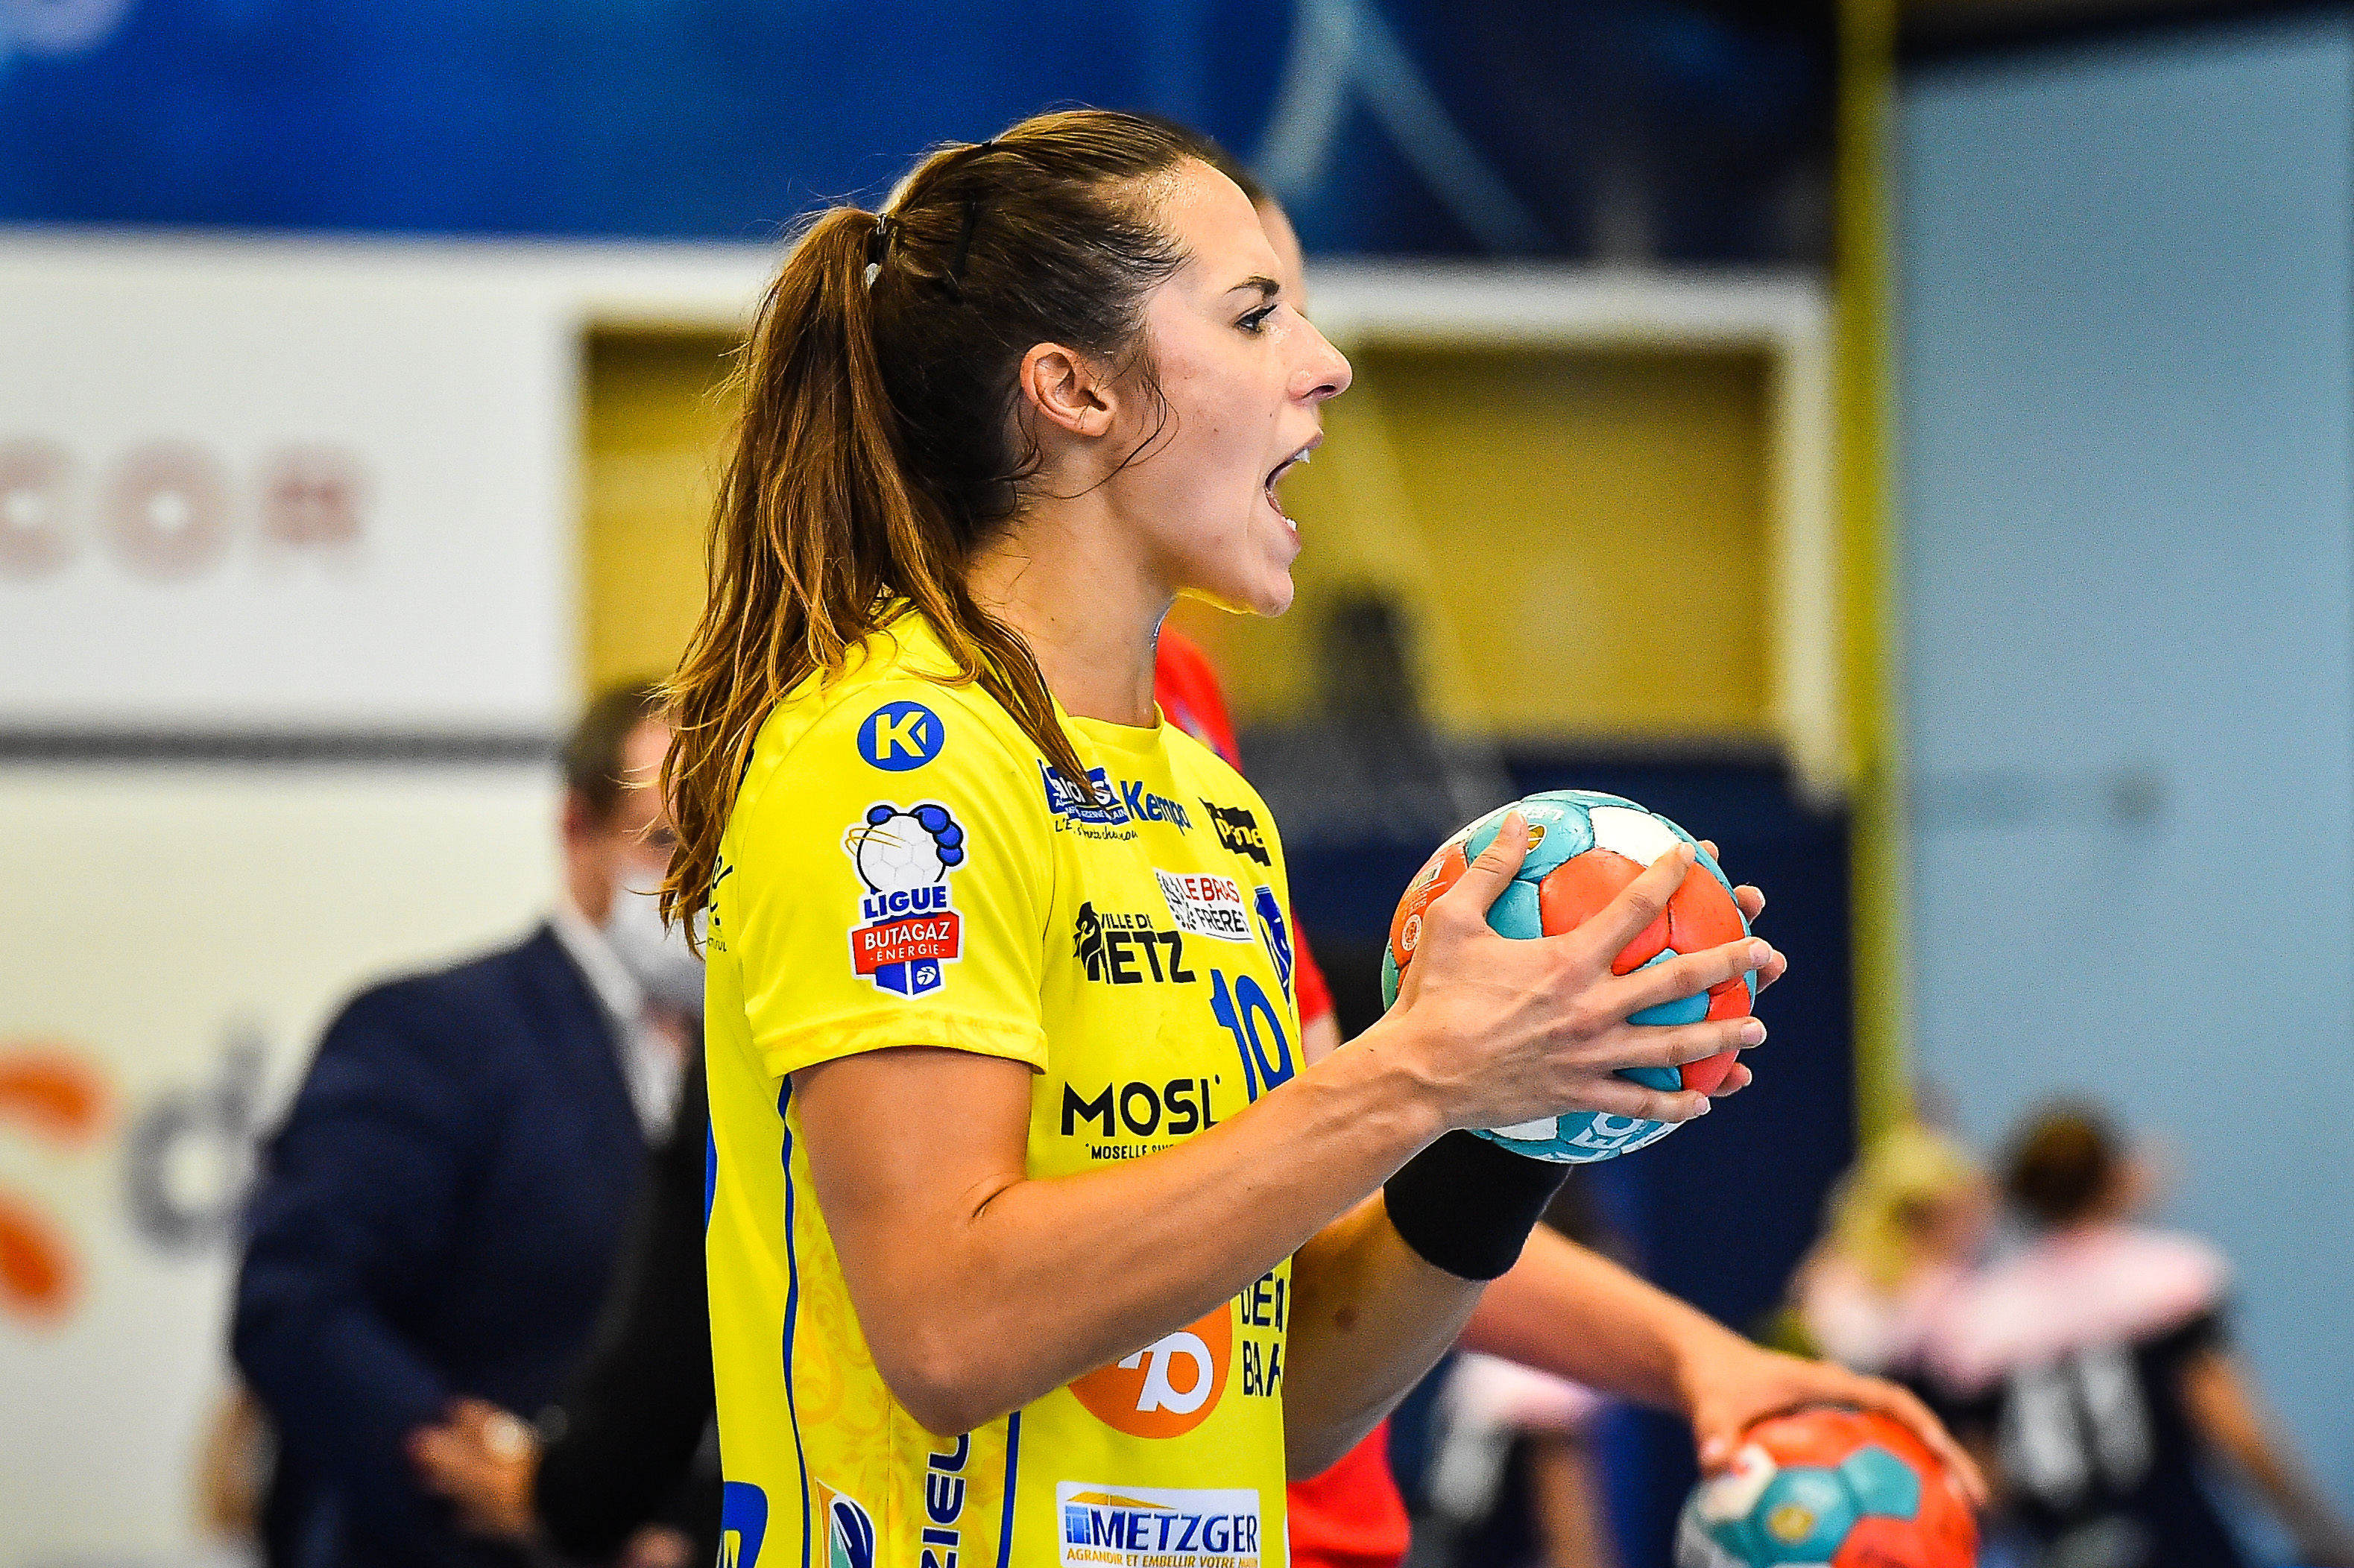 Louise BURGAARD of Metz during the Ligue Butaguaz Energie match between Chambray and Metz on September 15, 2021 in Chambray-les-Tours, France. (Photo by Matthieu Mirville/Icon Sport) - Louise BURGAARD -  (France)